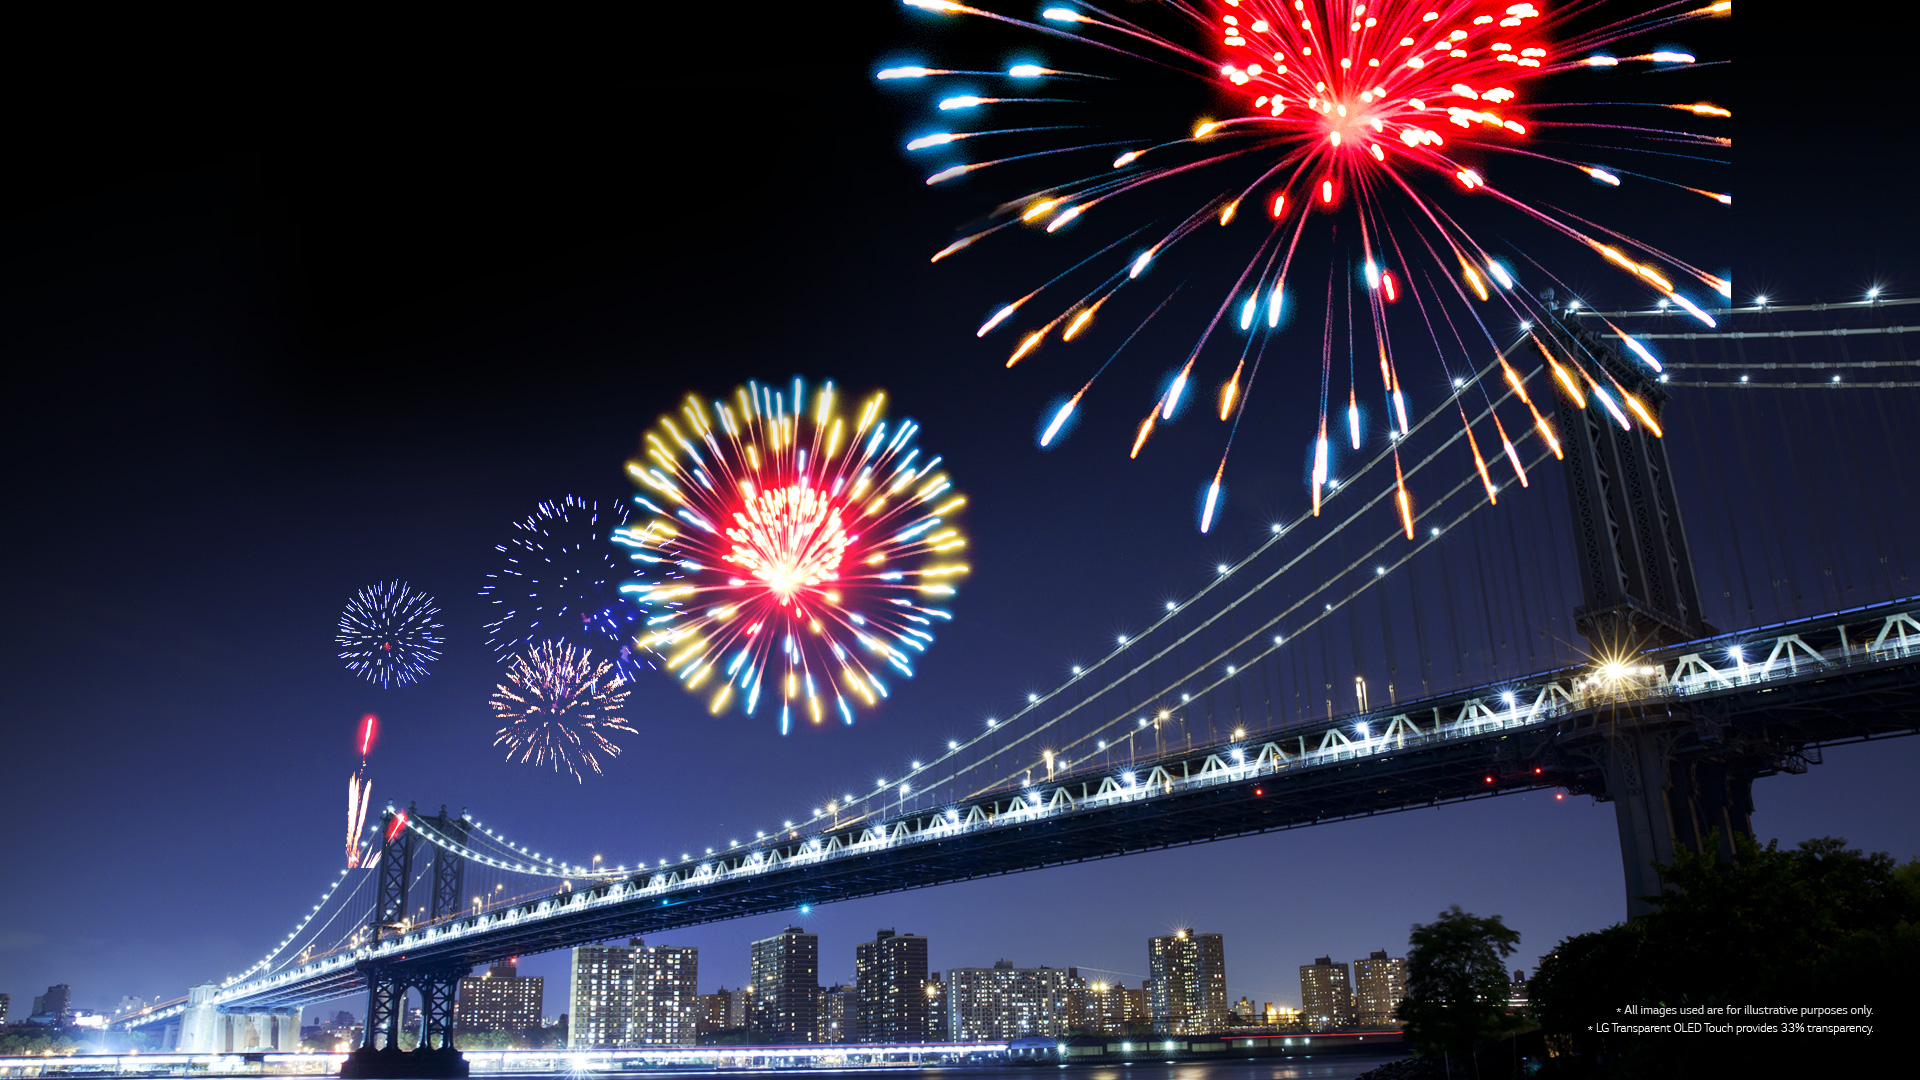 Fireworks displayed on the screen overlaid with the landscape view of the bridge in the city at night in the background.